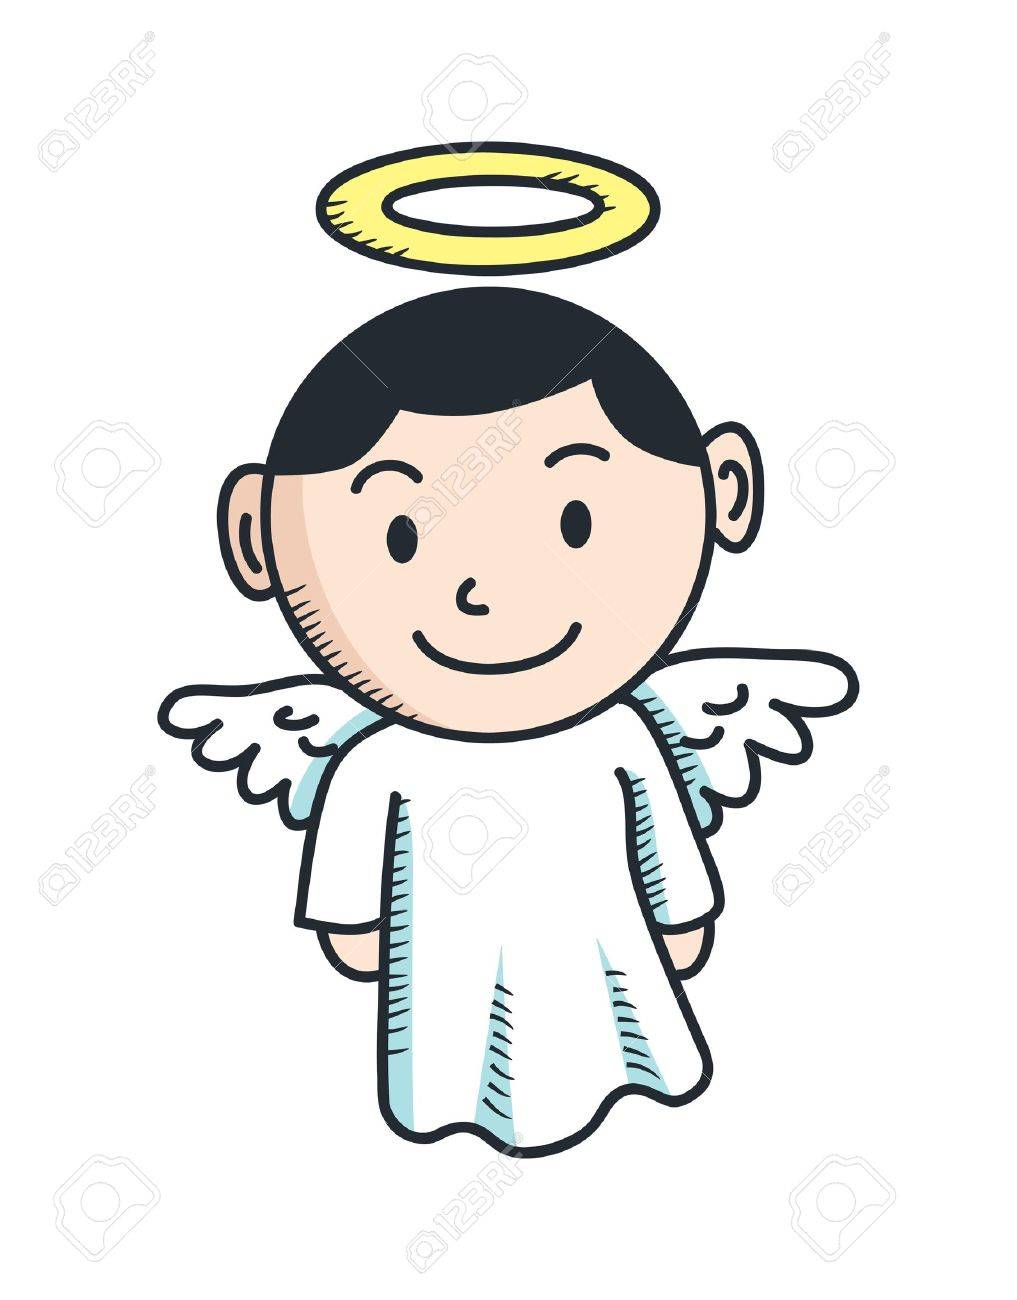 Cute Angel Cartoon Royalty Free Cliparts Vectors And Stock Illustration Image 16591603